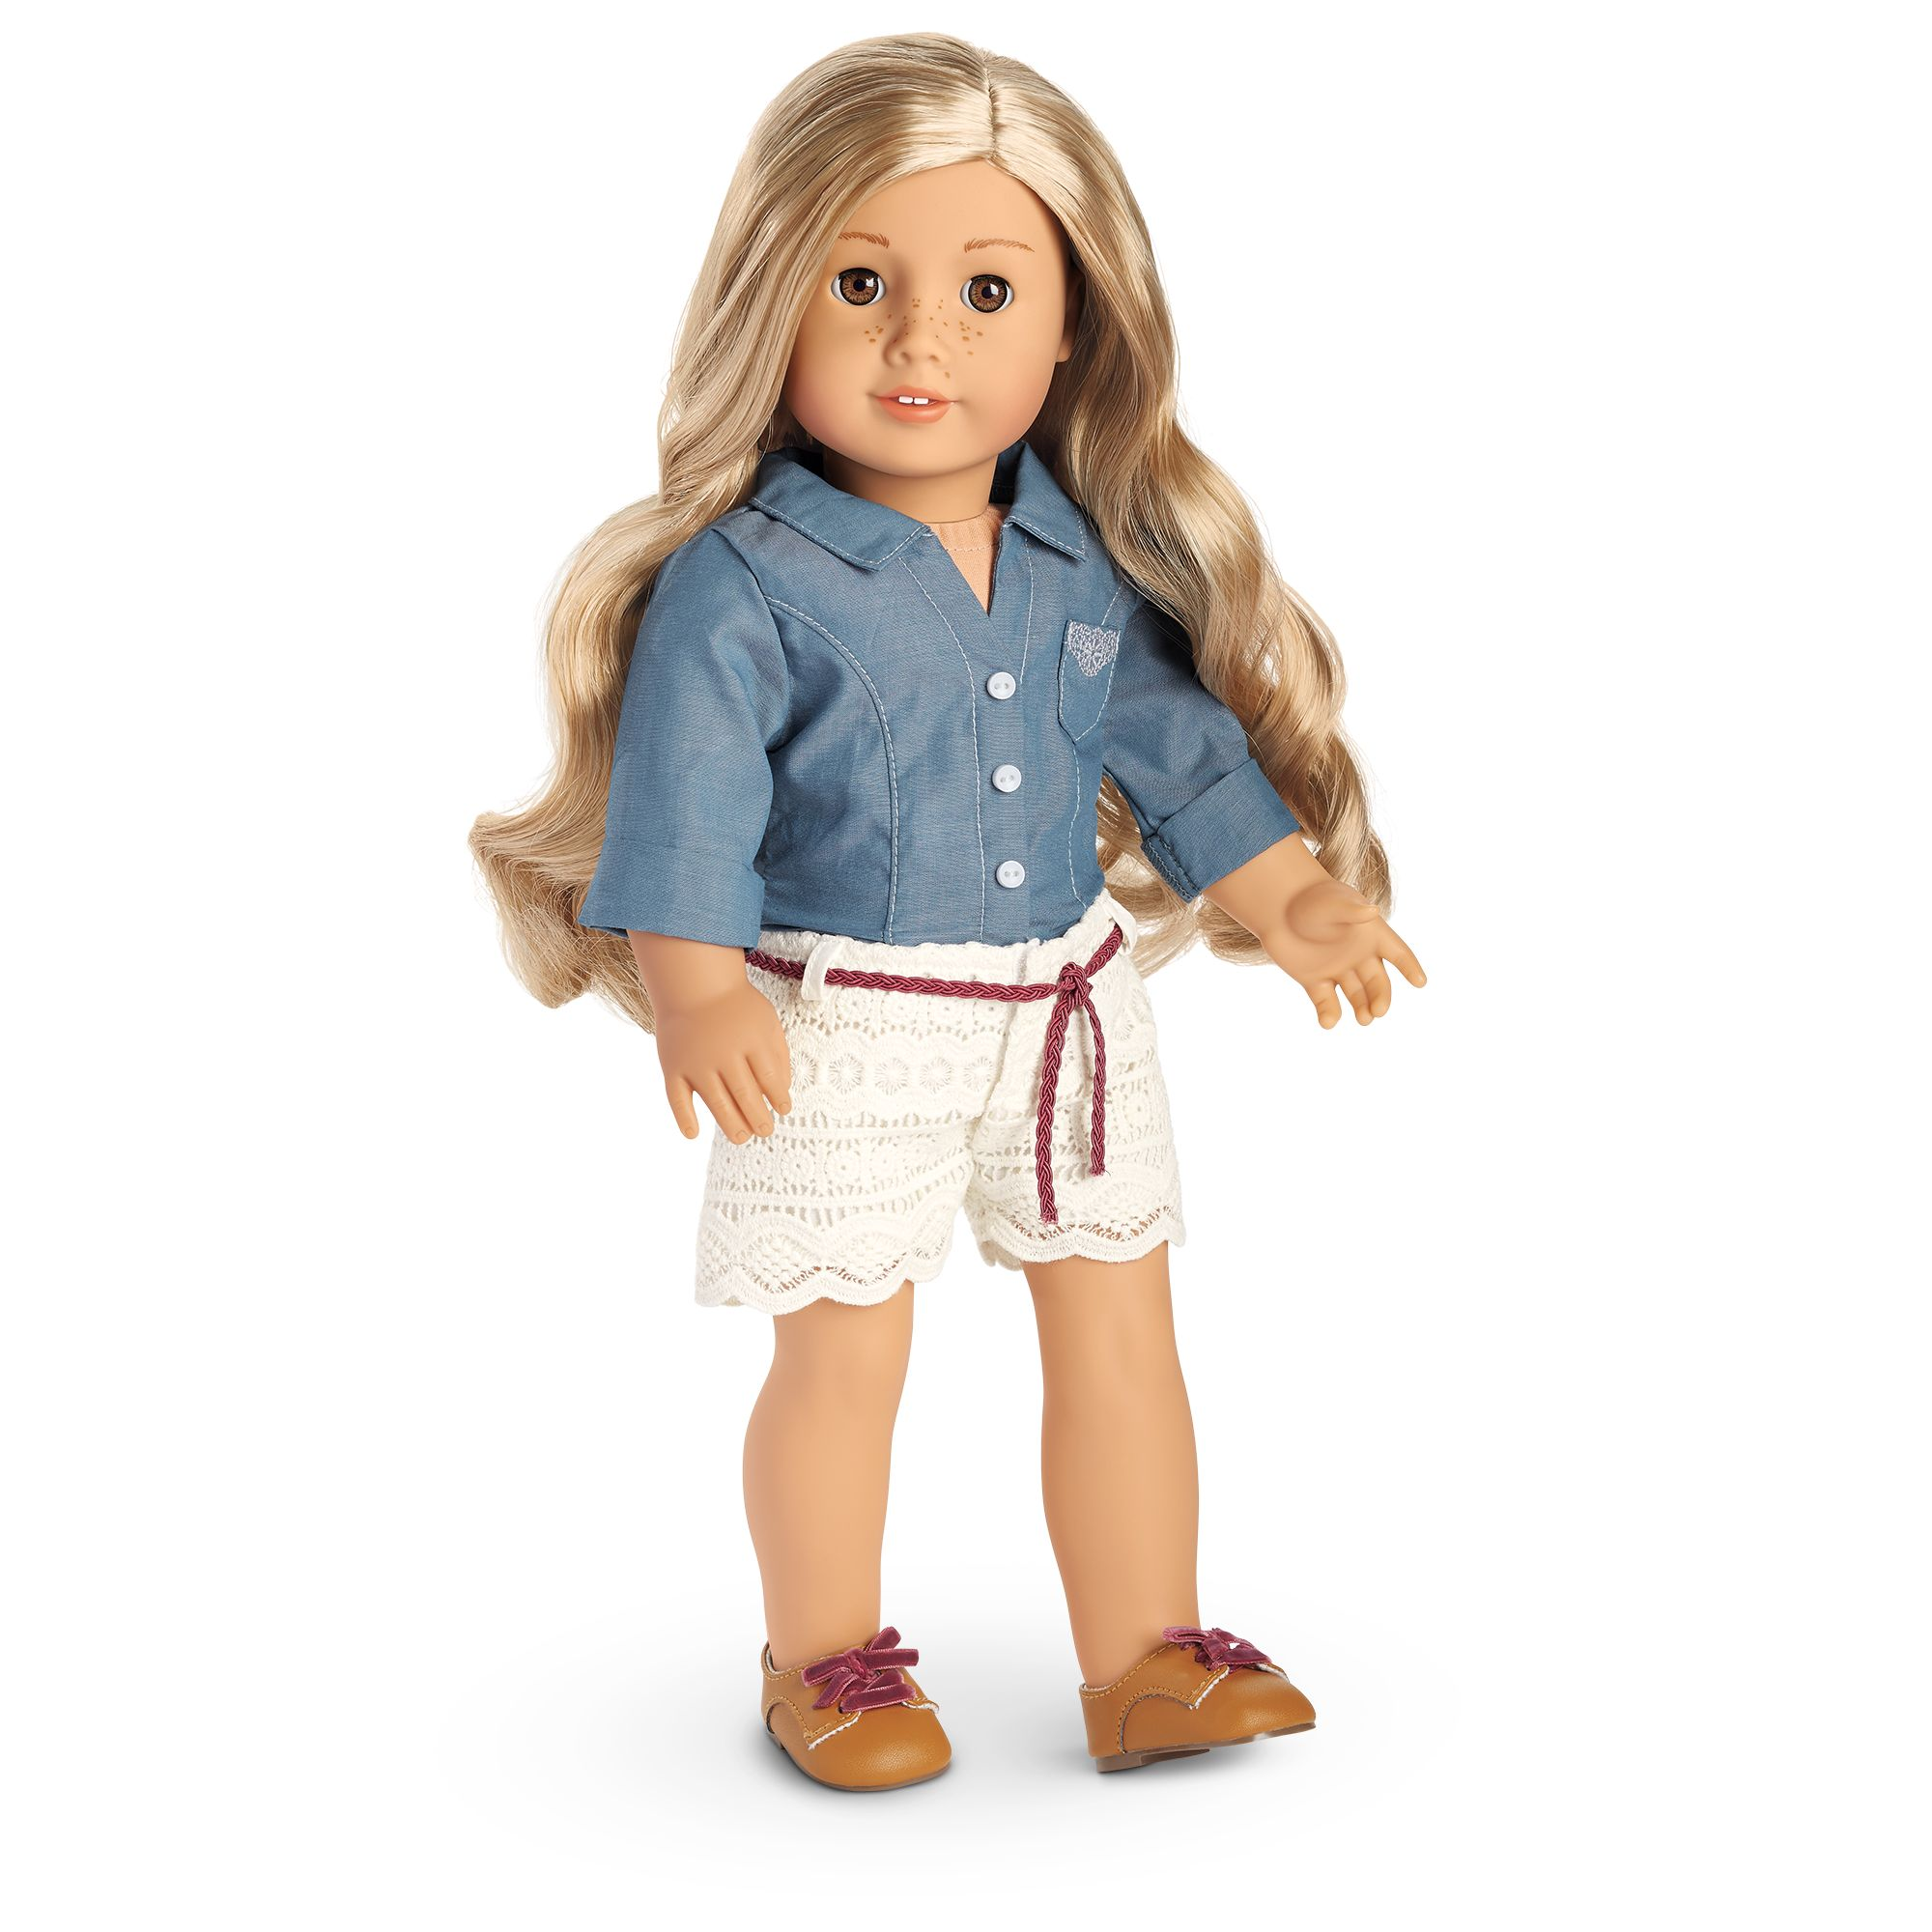 Tenney S Picnic Outfit American Girl Wiki Fandom Powered By Wikia